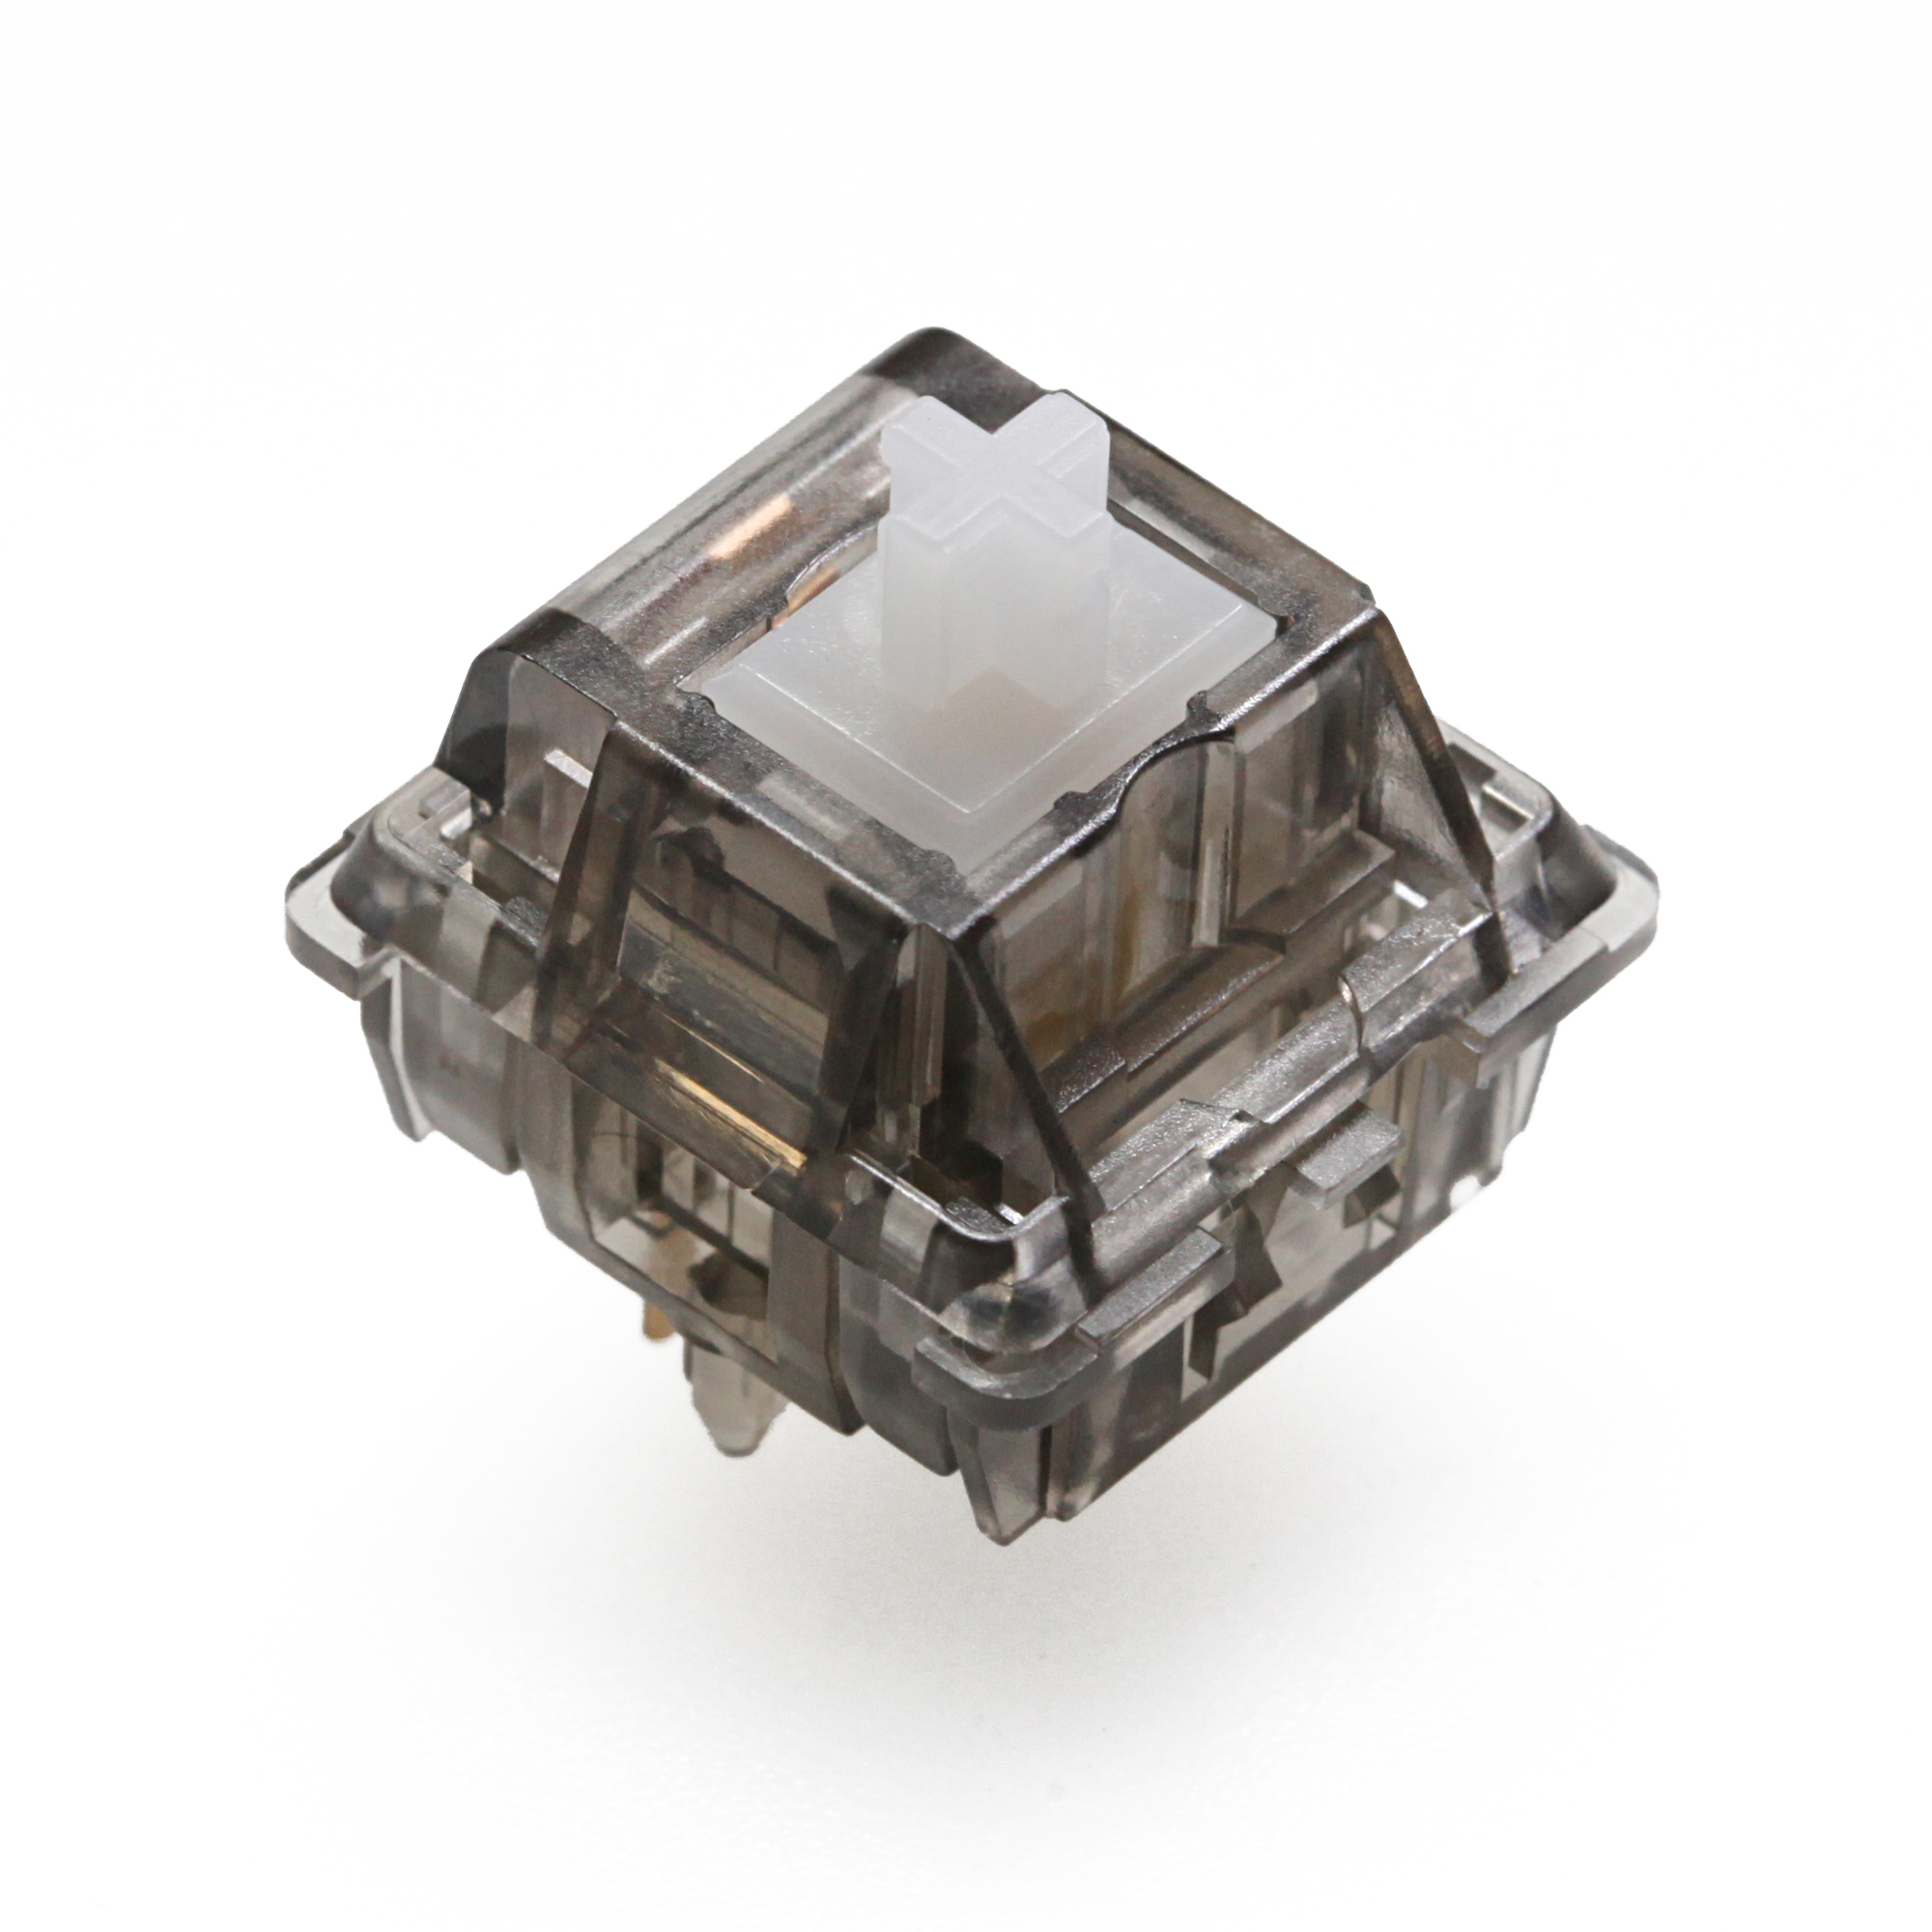 EVERGLIDE SWITCH Oreo Mx Stem With Transparent Clear Mx Stem For Mechanical Keyboard 5pin 45g Tactile Similar To Holy Panda